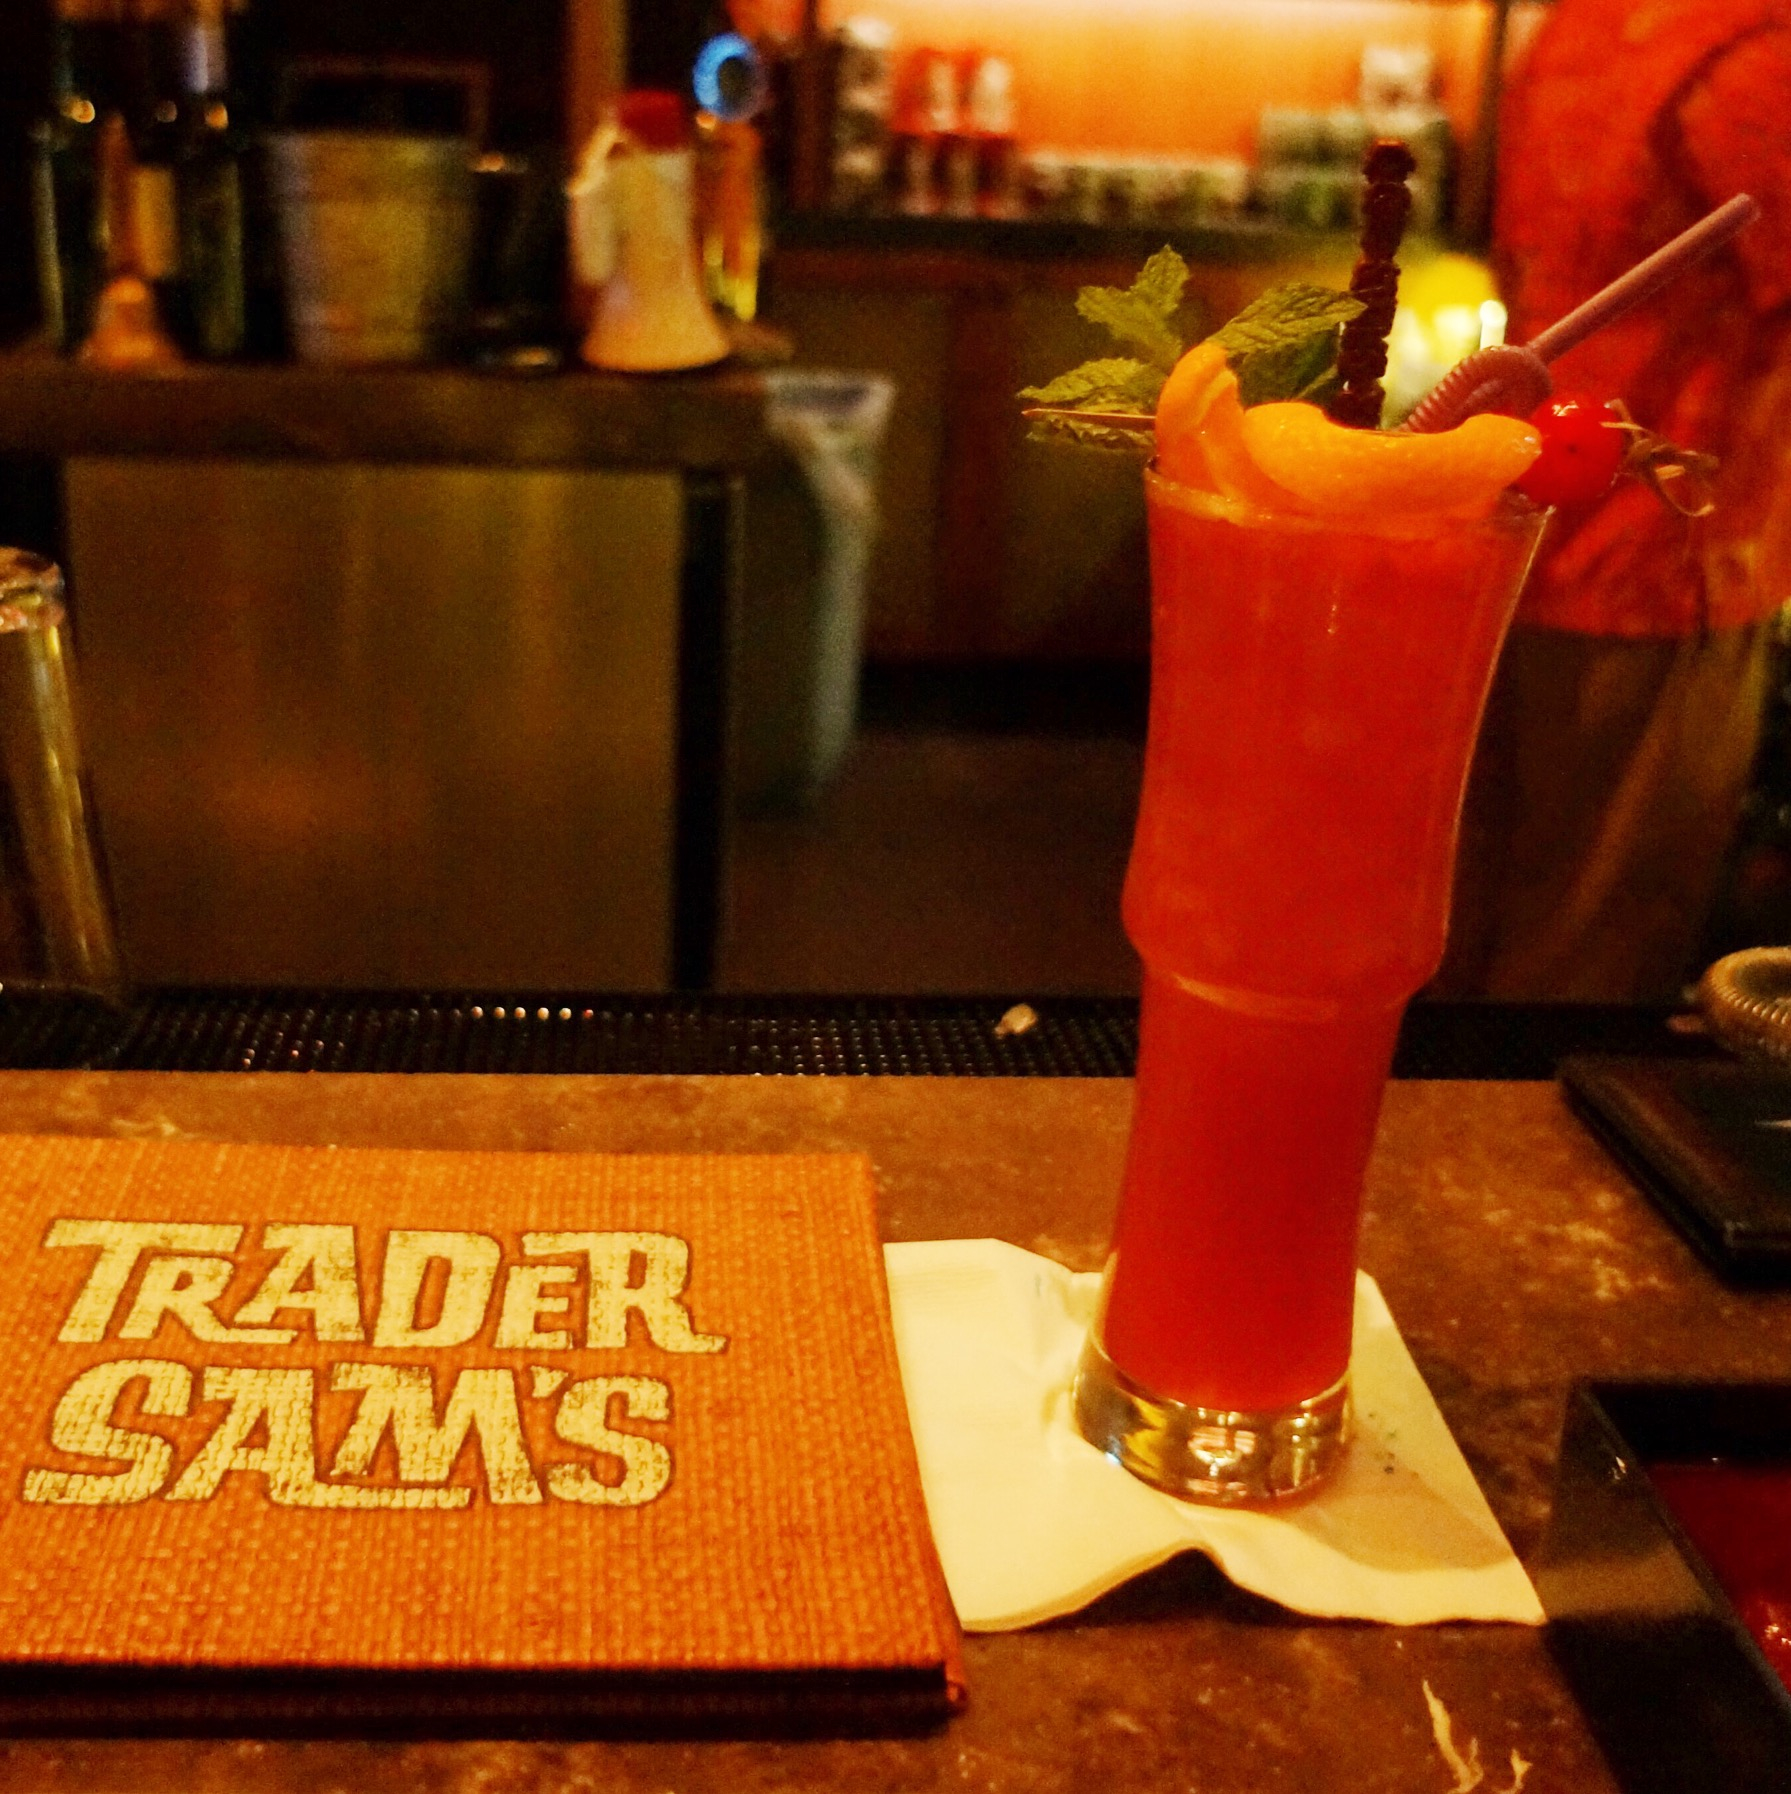 trader-sams-cocktail.jpg